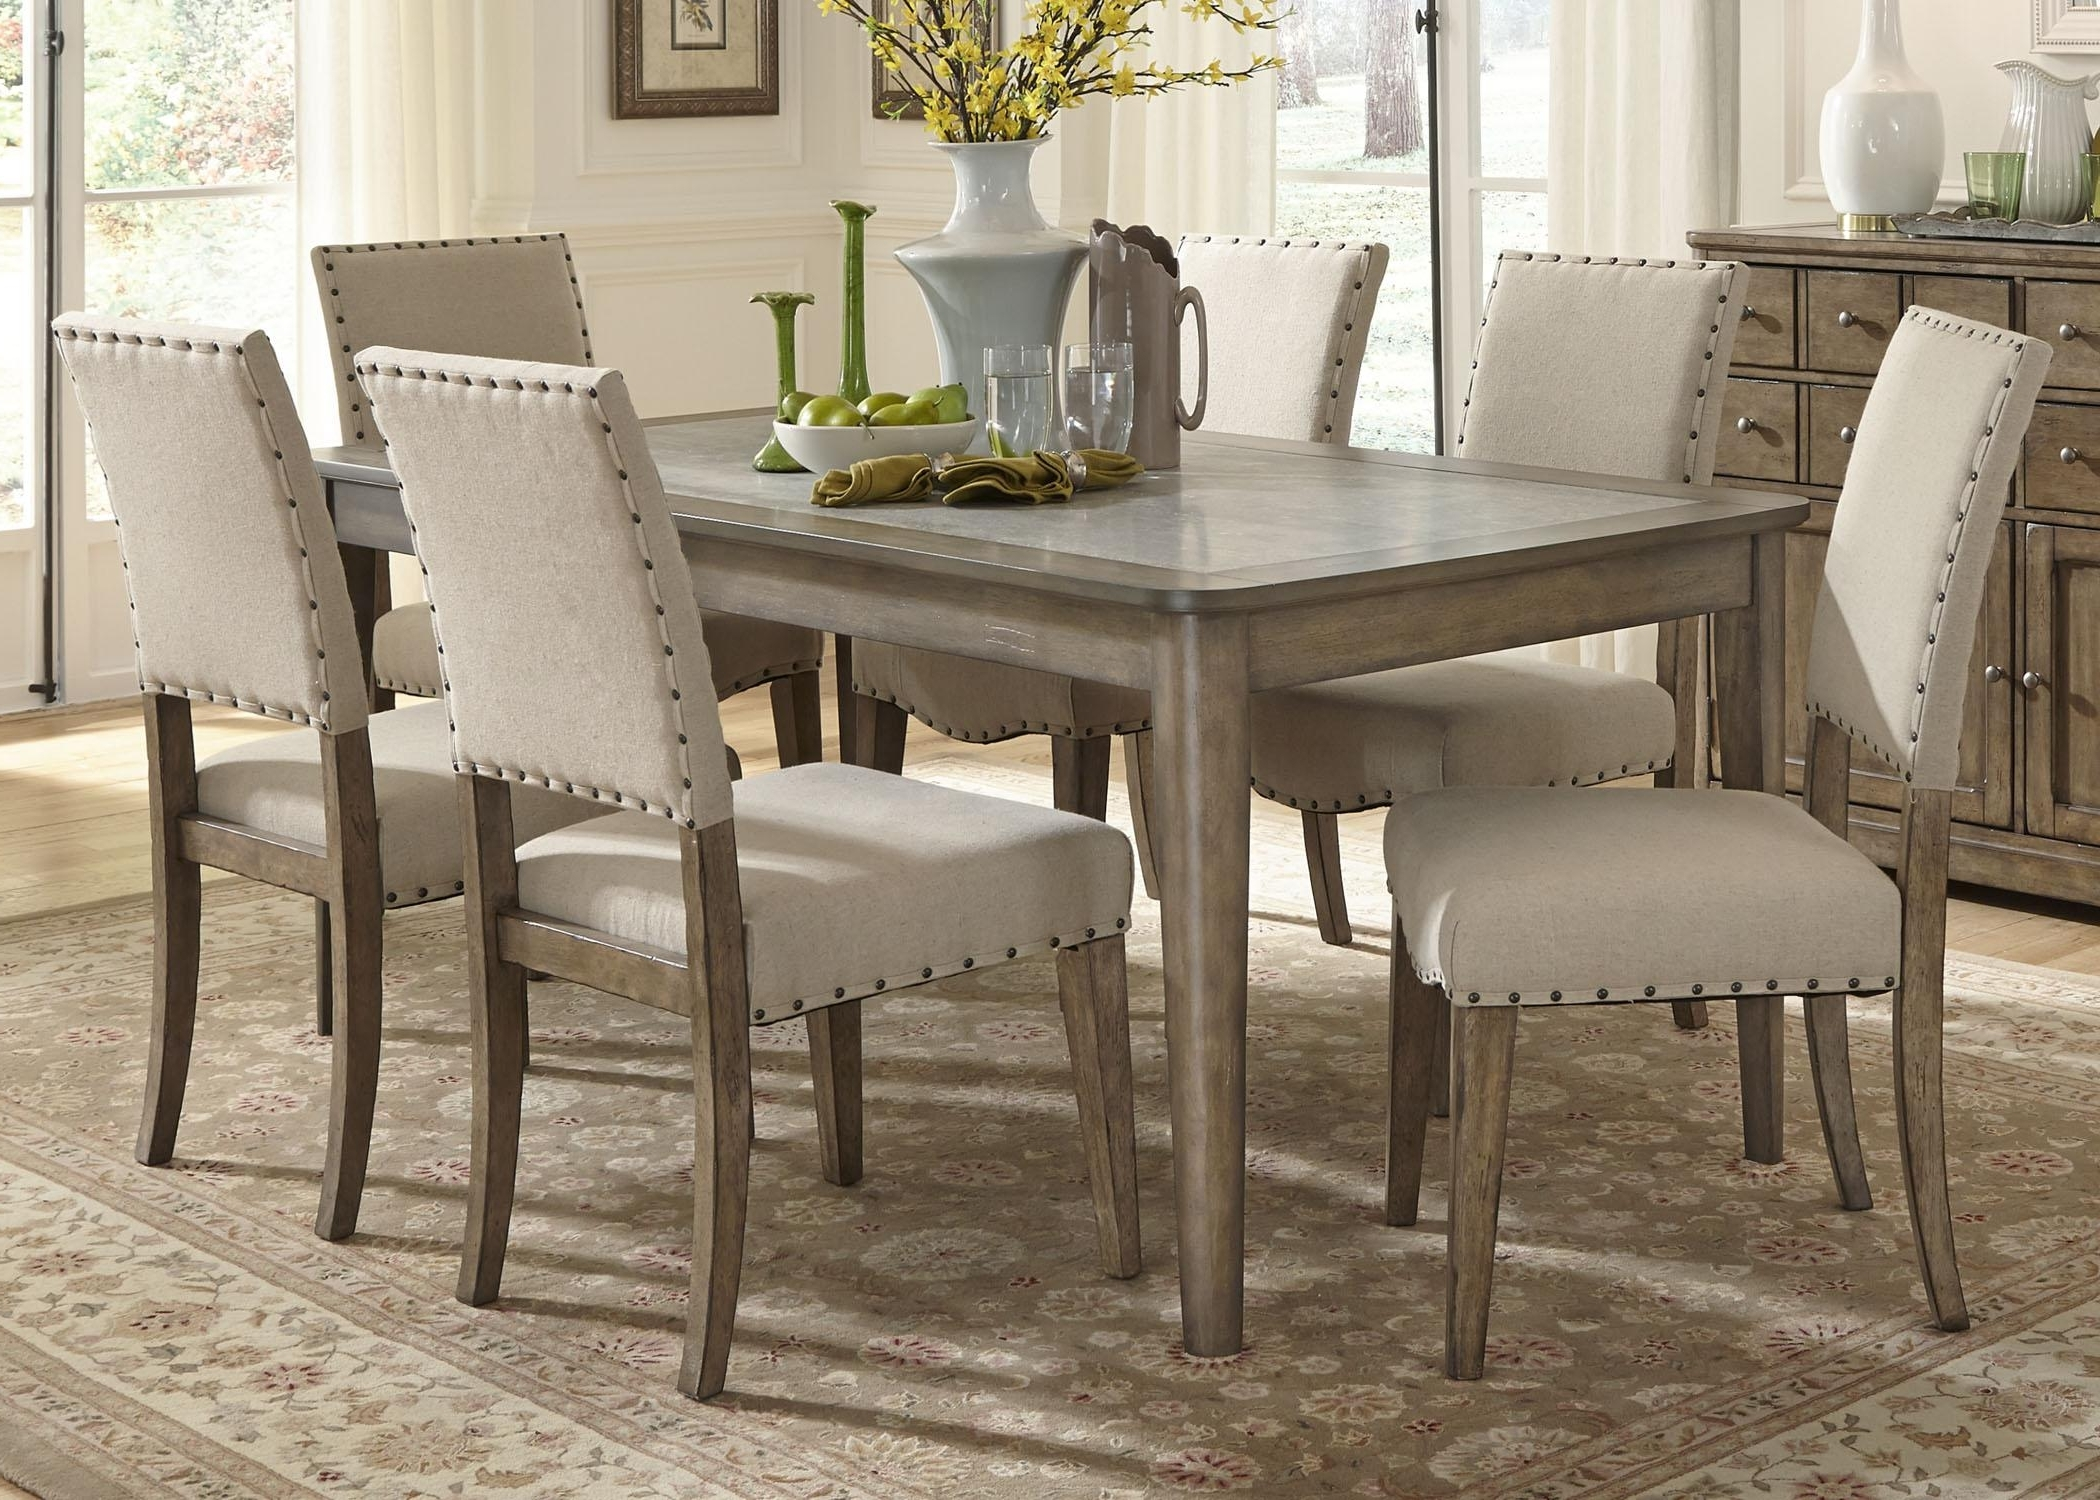 Dining Tables Sets regarding Well-known Liberty Furniture Weatherford Casual Rustic 7 Piece Dining Table And